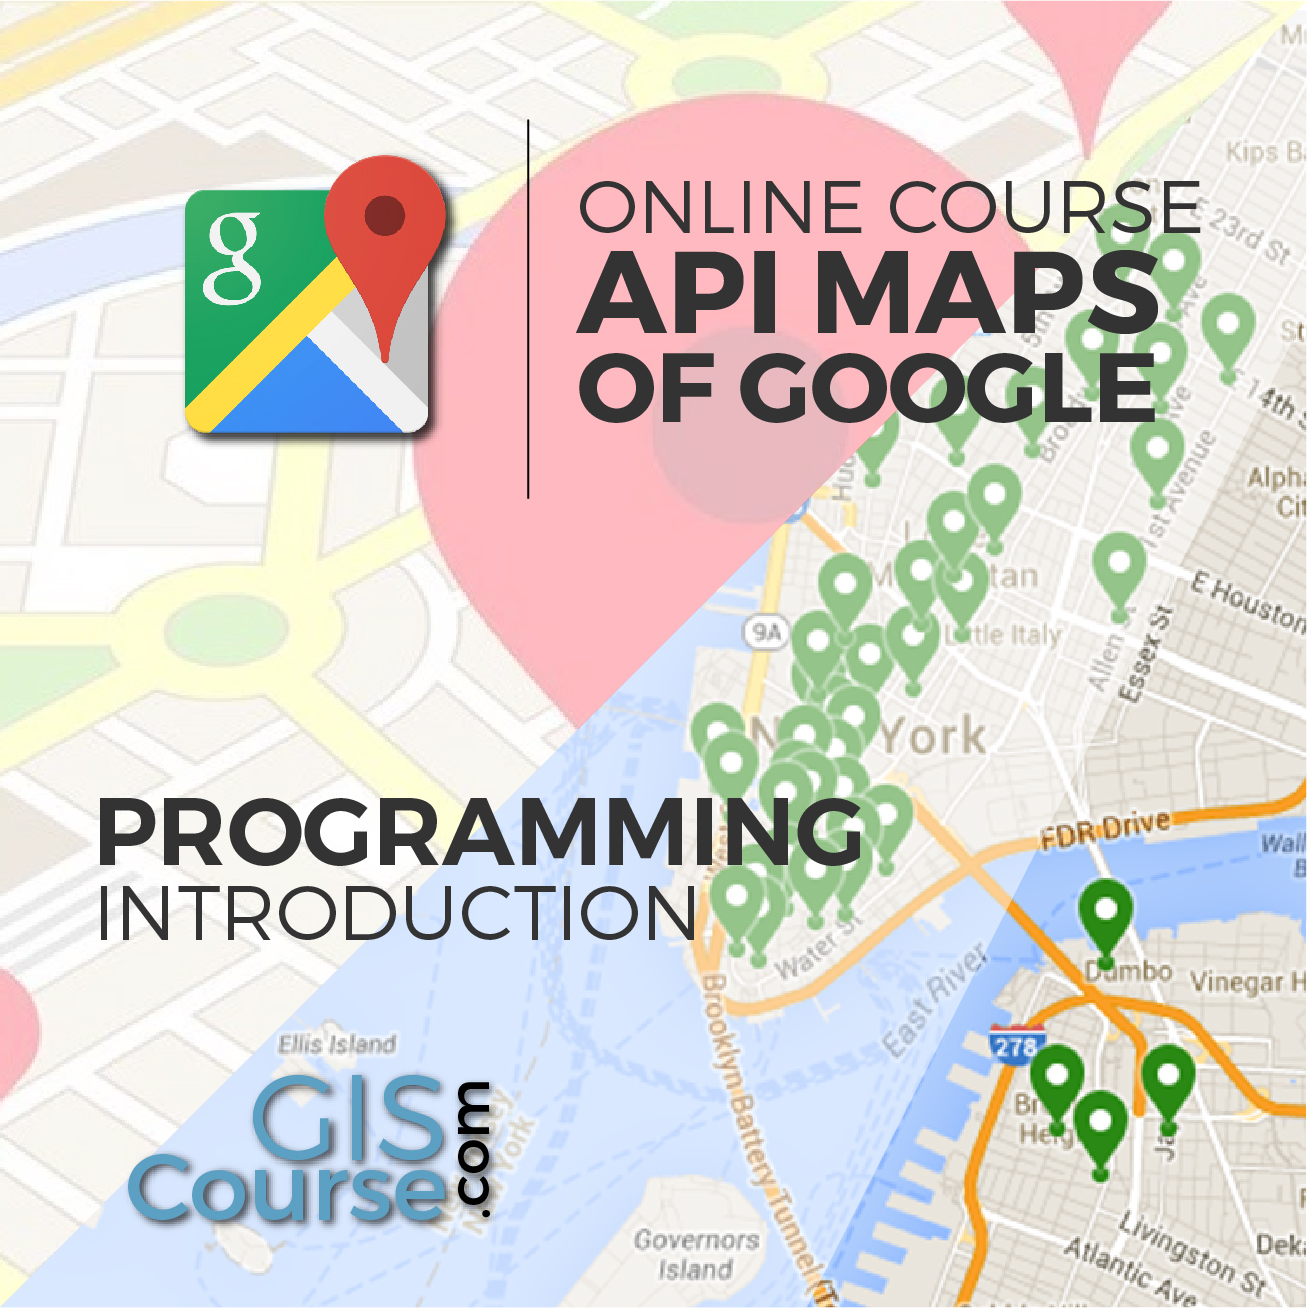 Introduction in programming using Google Maps API